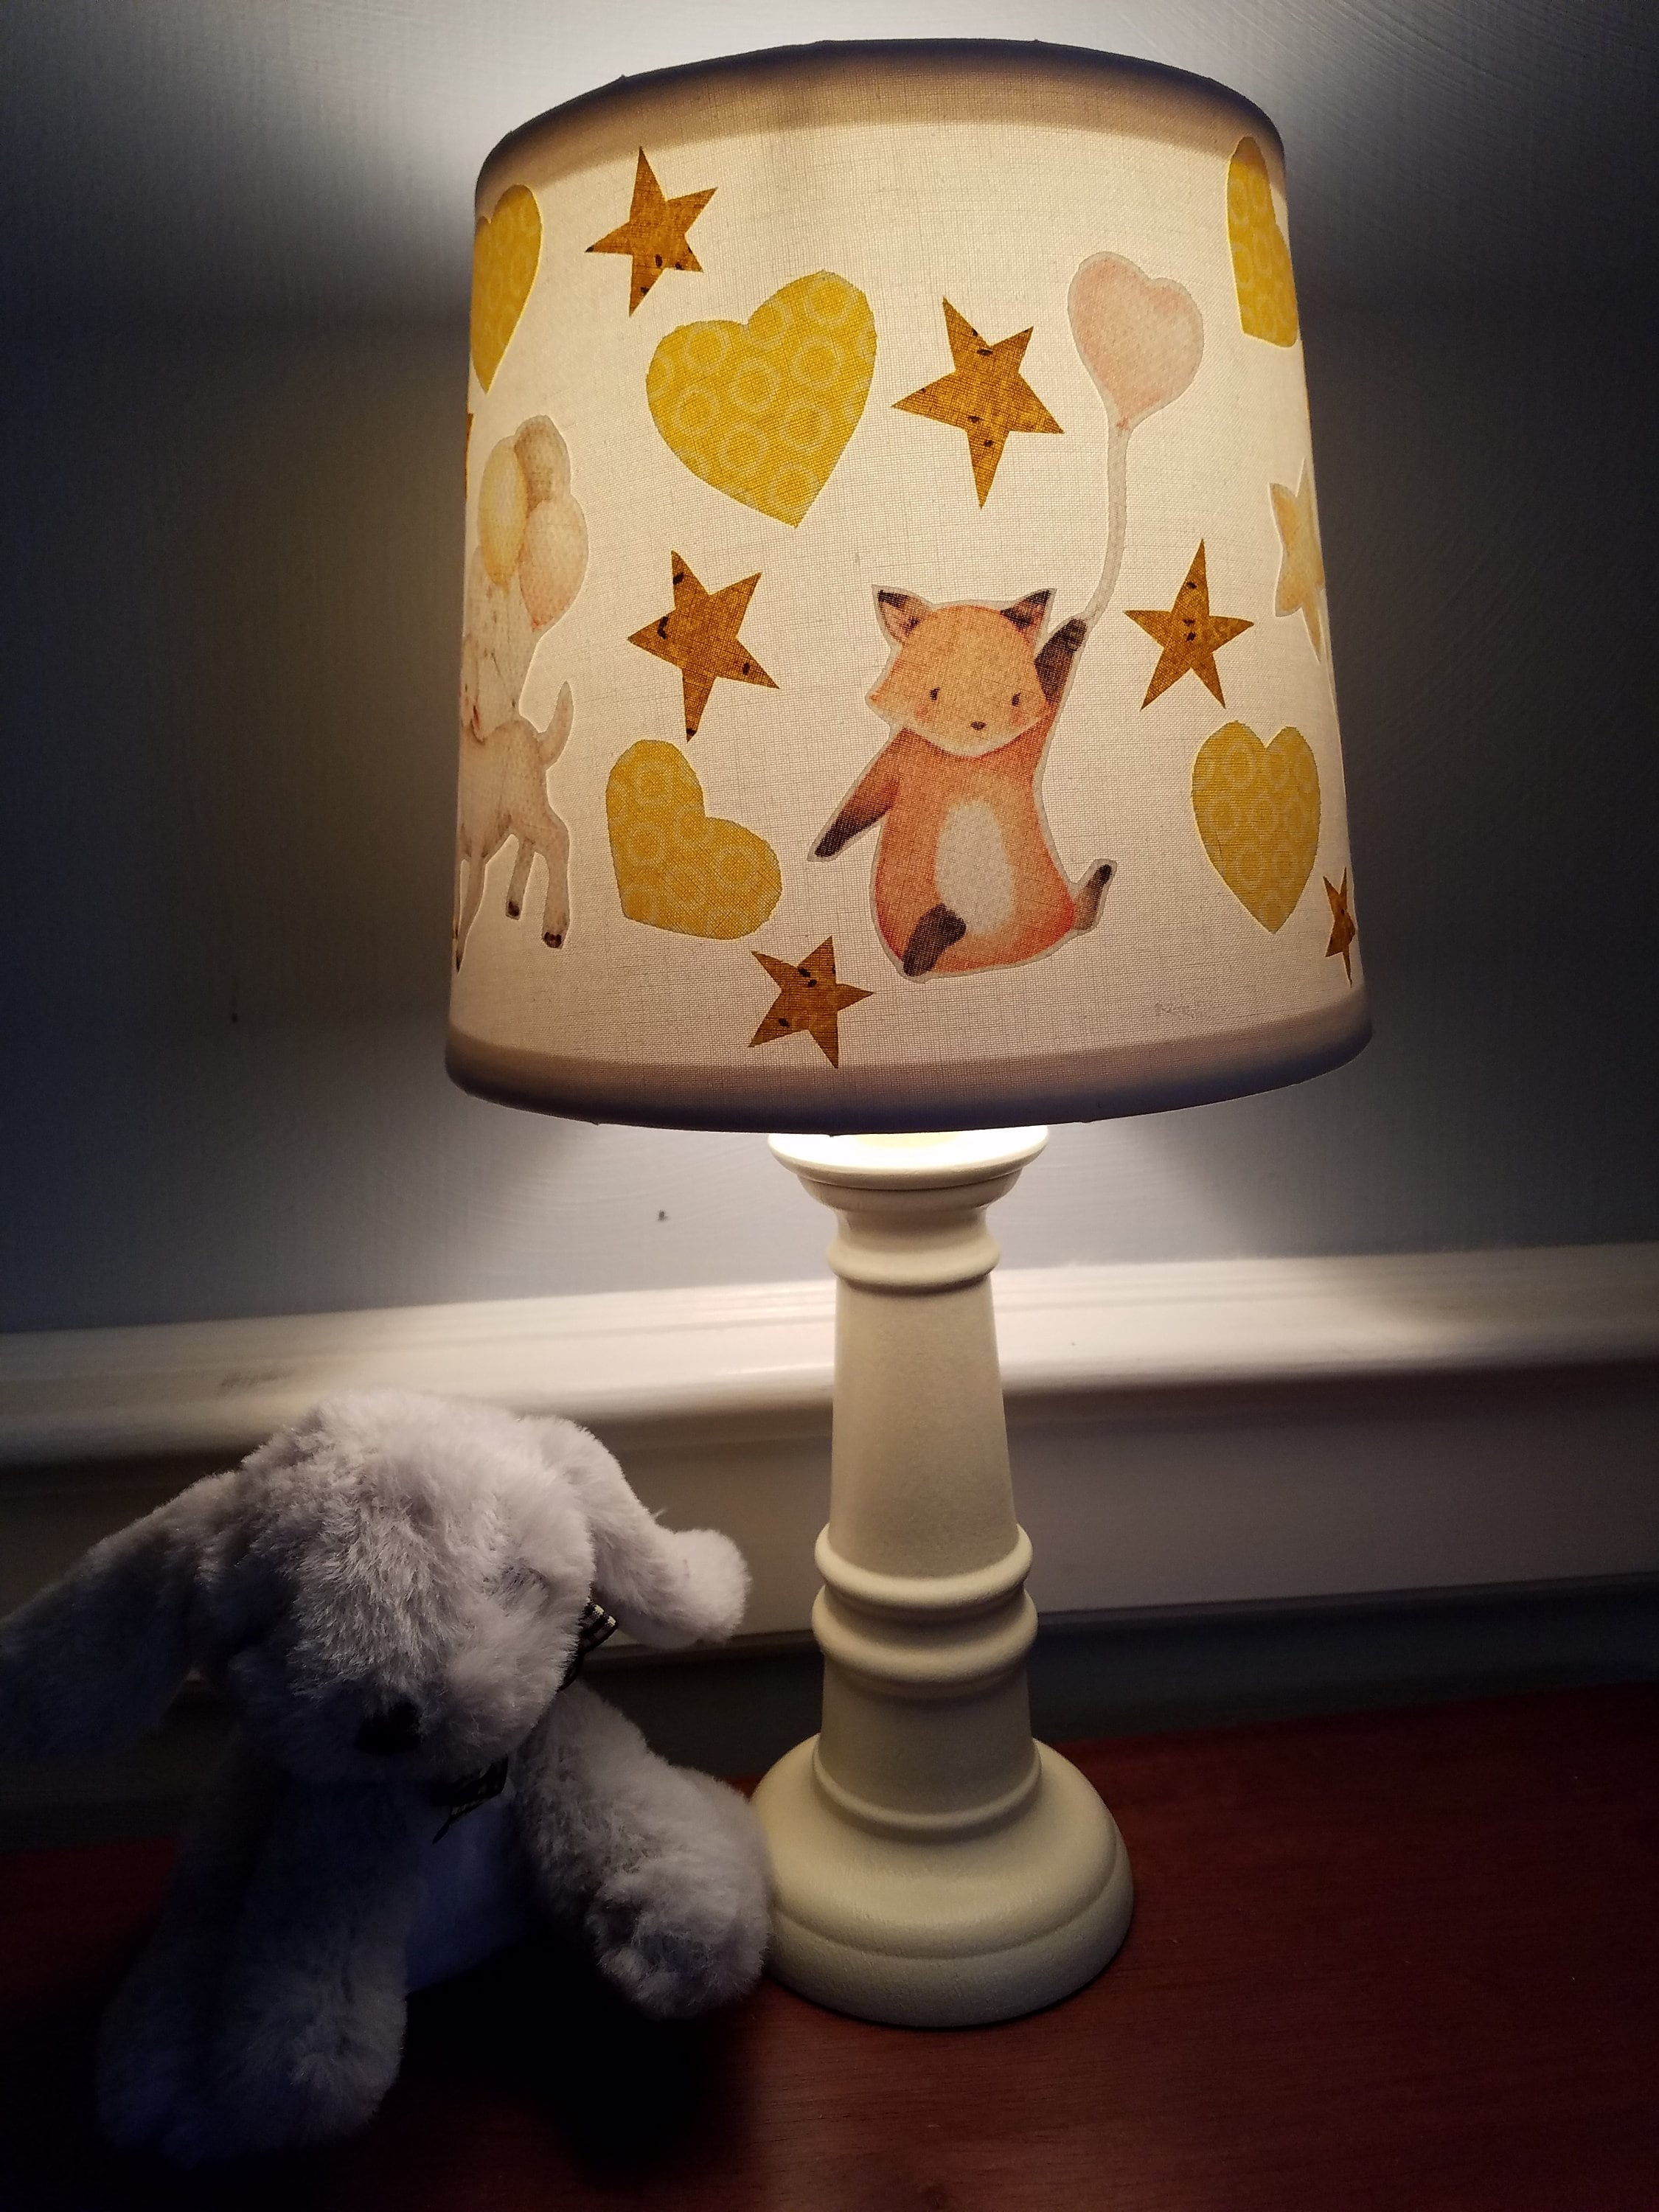 Animal Lamp For Nursery Fox Lamb Bunny Nursery Lamp Animal Baby Lamp Baby Animal Lamp Fox Accent Lamp Lamb Accent Lamp Bunny Accent Lamp Gender Neutral Lamp